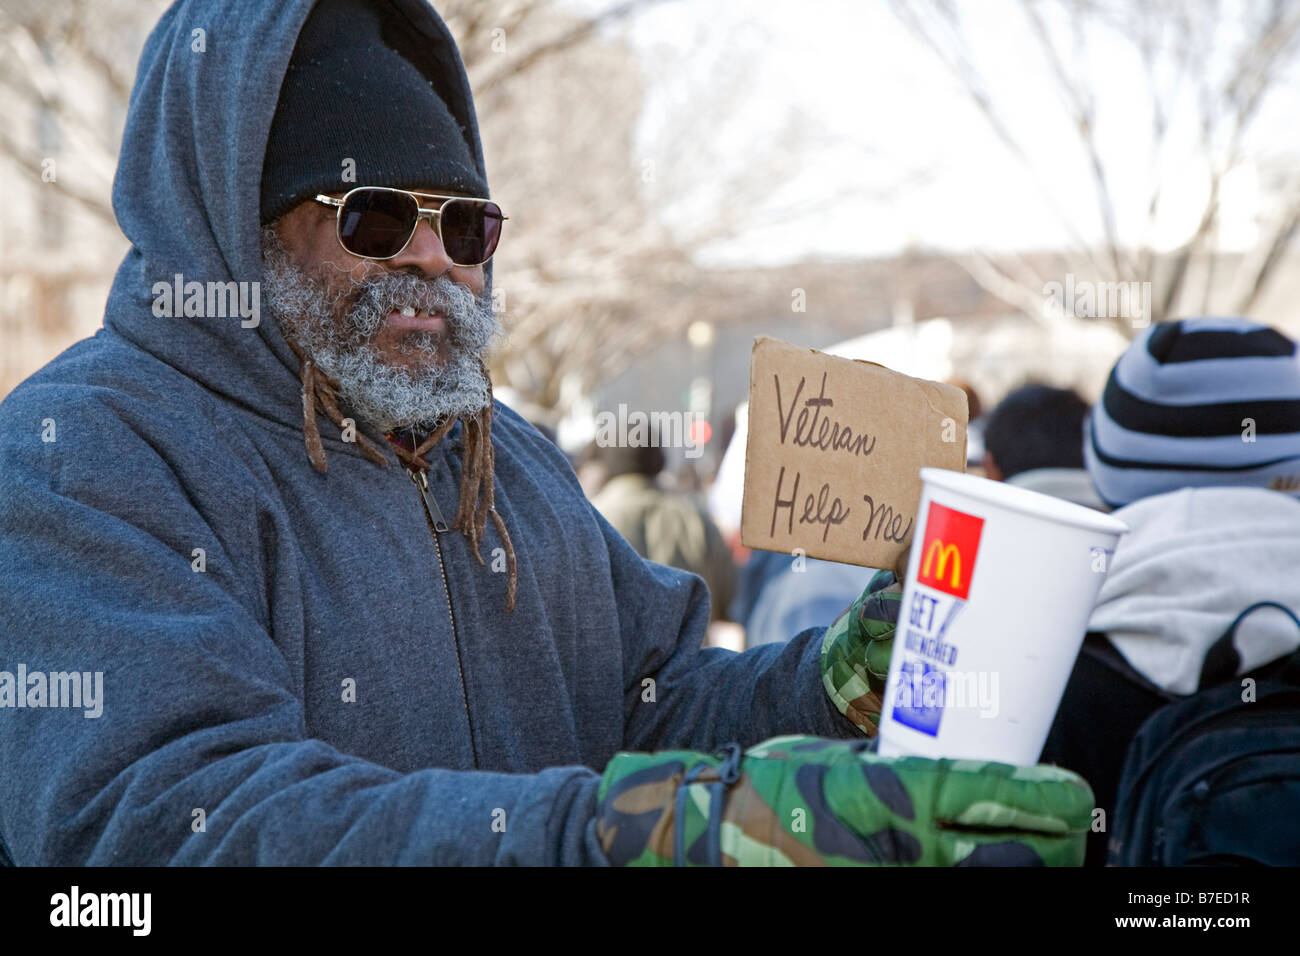 Man Asks Passersby for Handouts - Stock Image